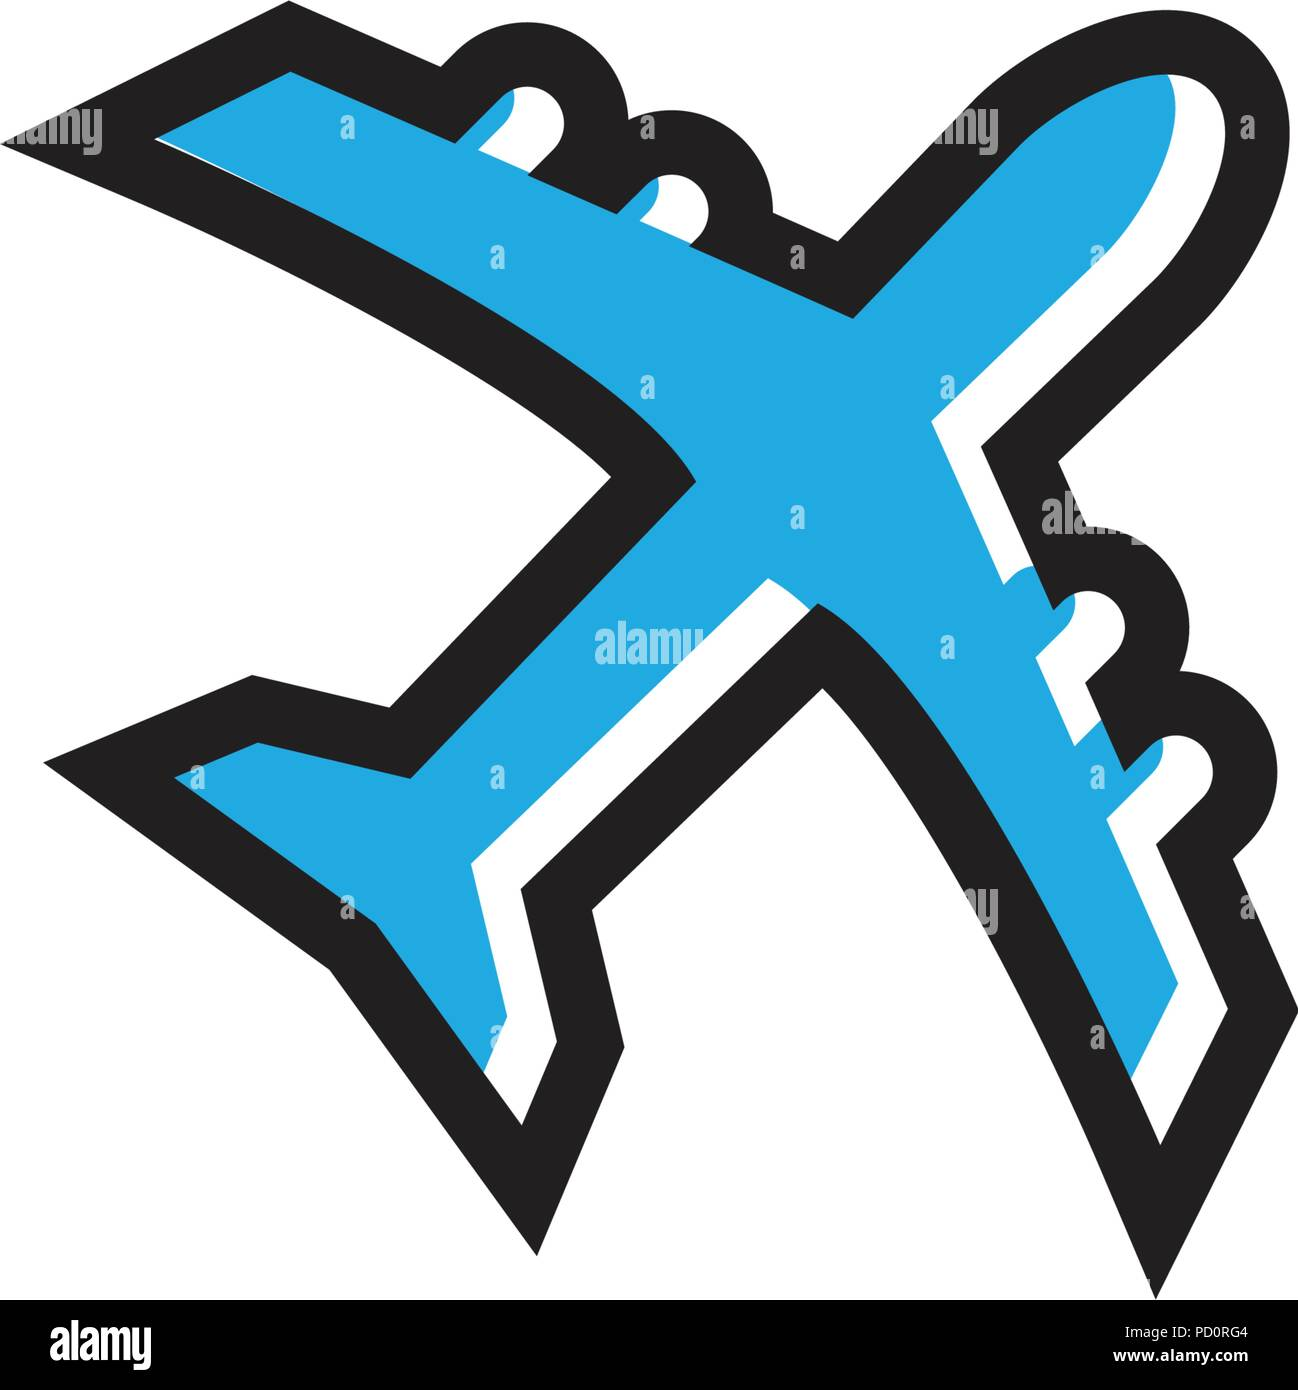 Illustration of aero plane graphic template vector - Stock Vector